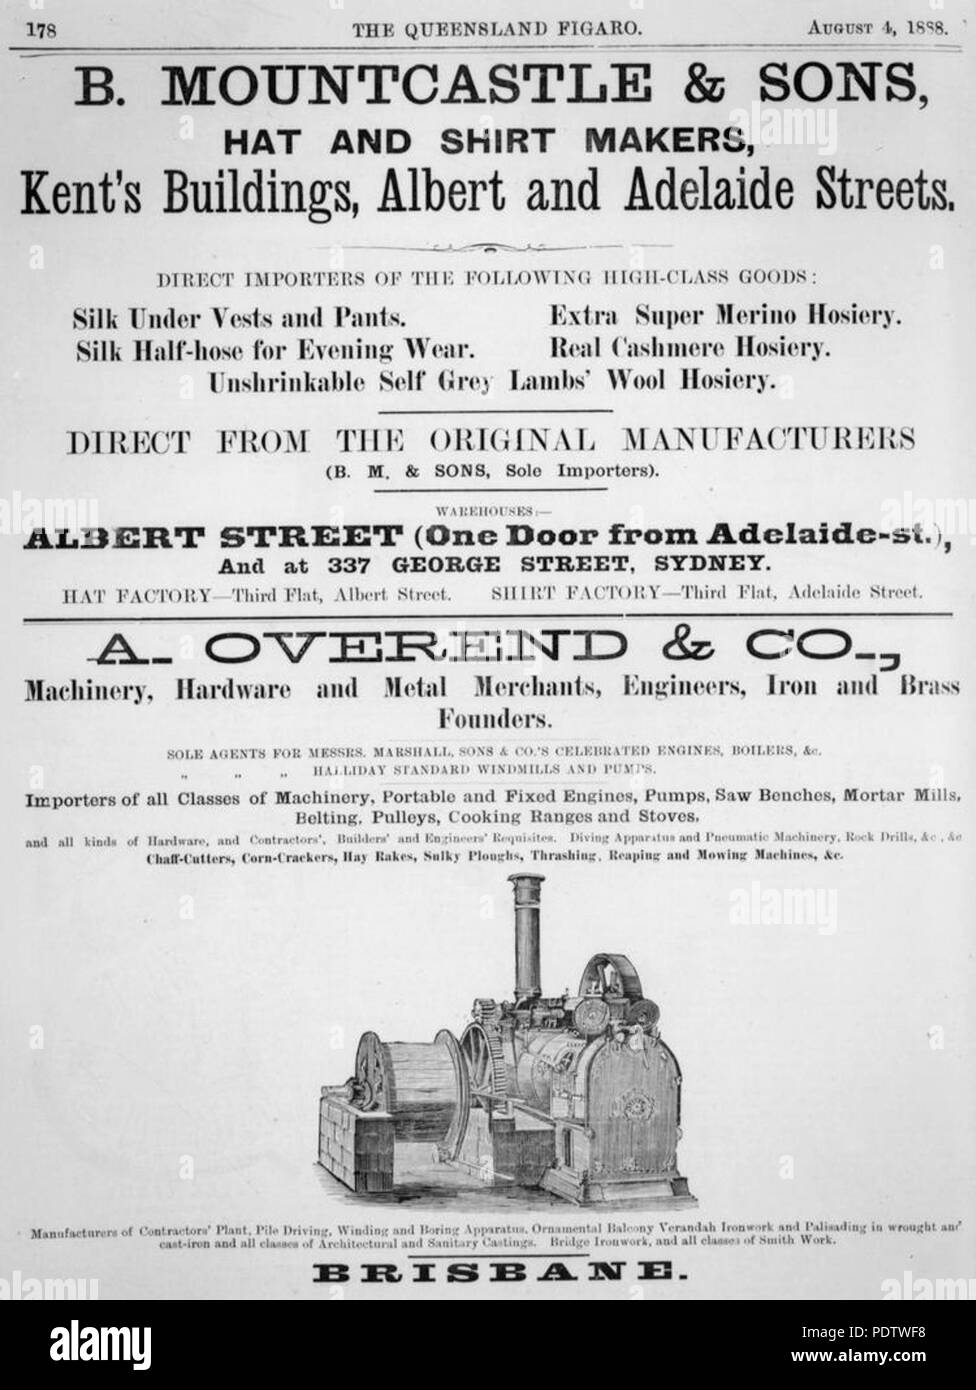 209 StateLibQld 1 116932 Two advertisements for clothing and